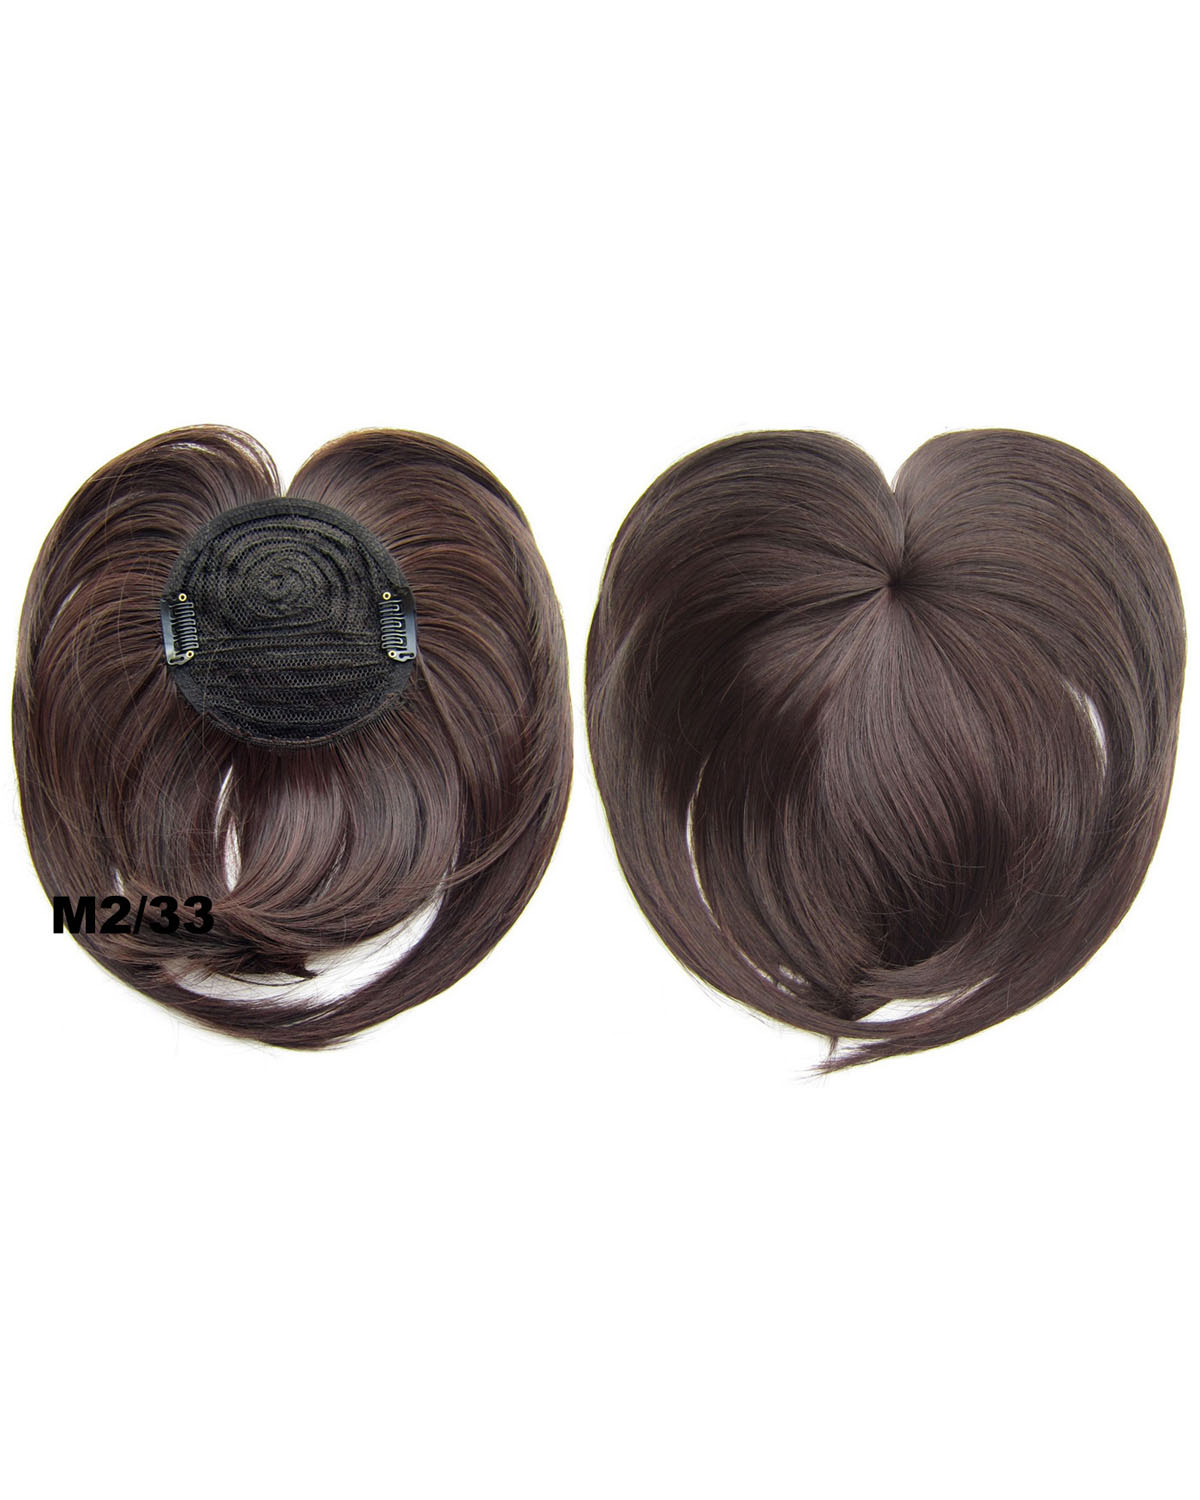 Girls Clean and Neat  Straight Short Bangs Clip in Synthetic Hair Extension Fringe Bangs Hairpiece  M2/33